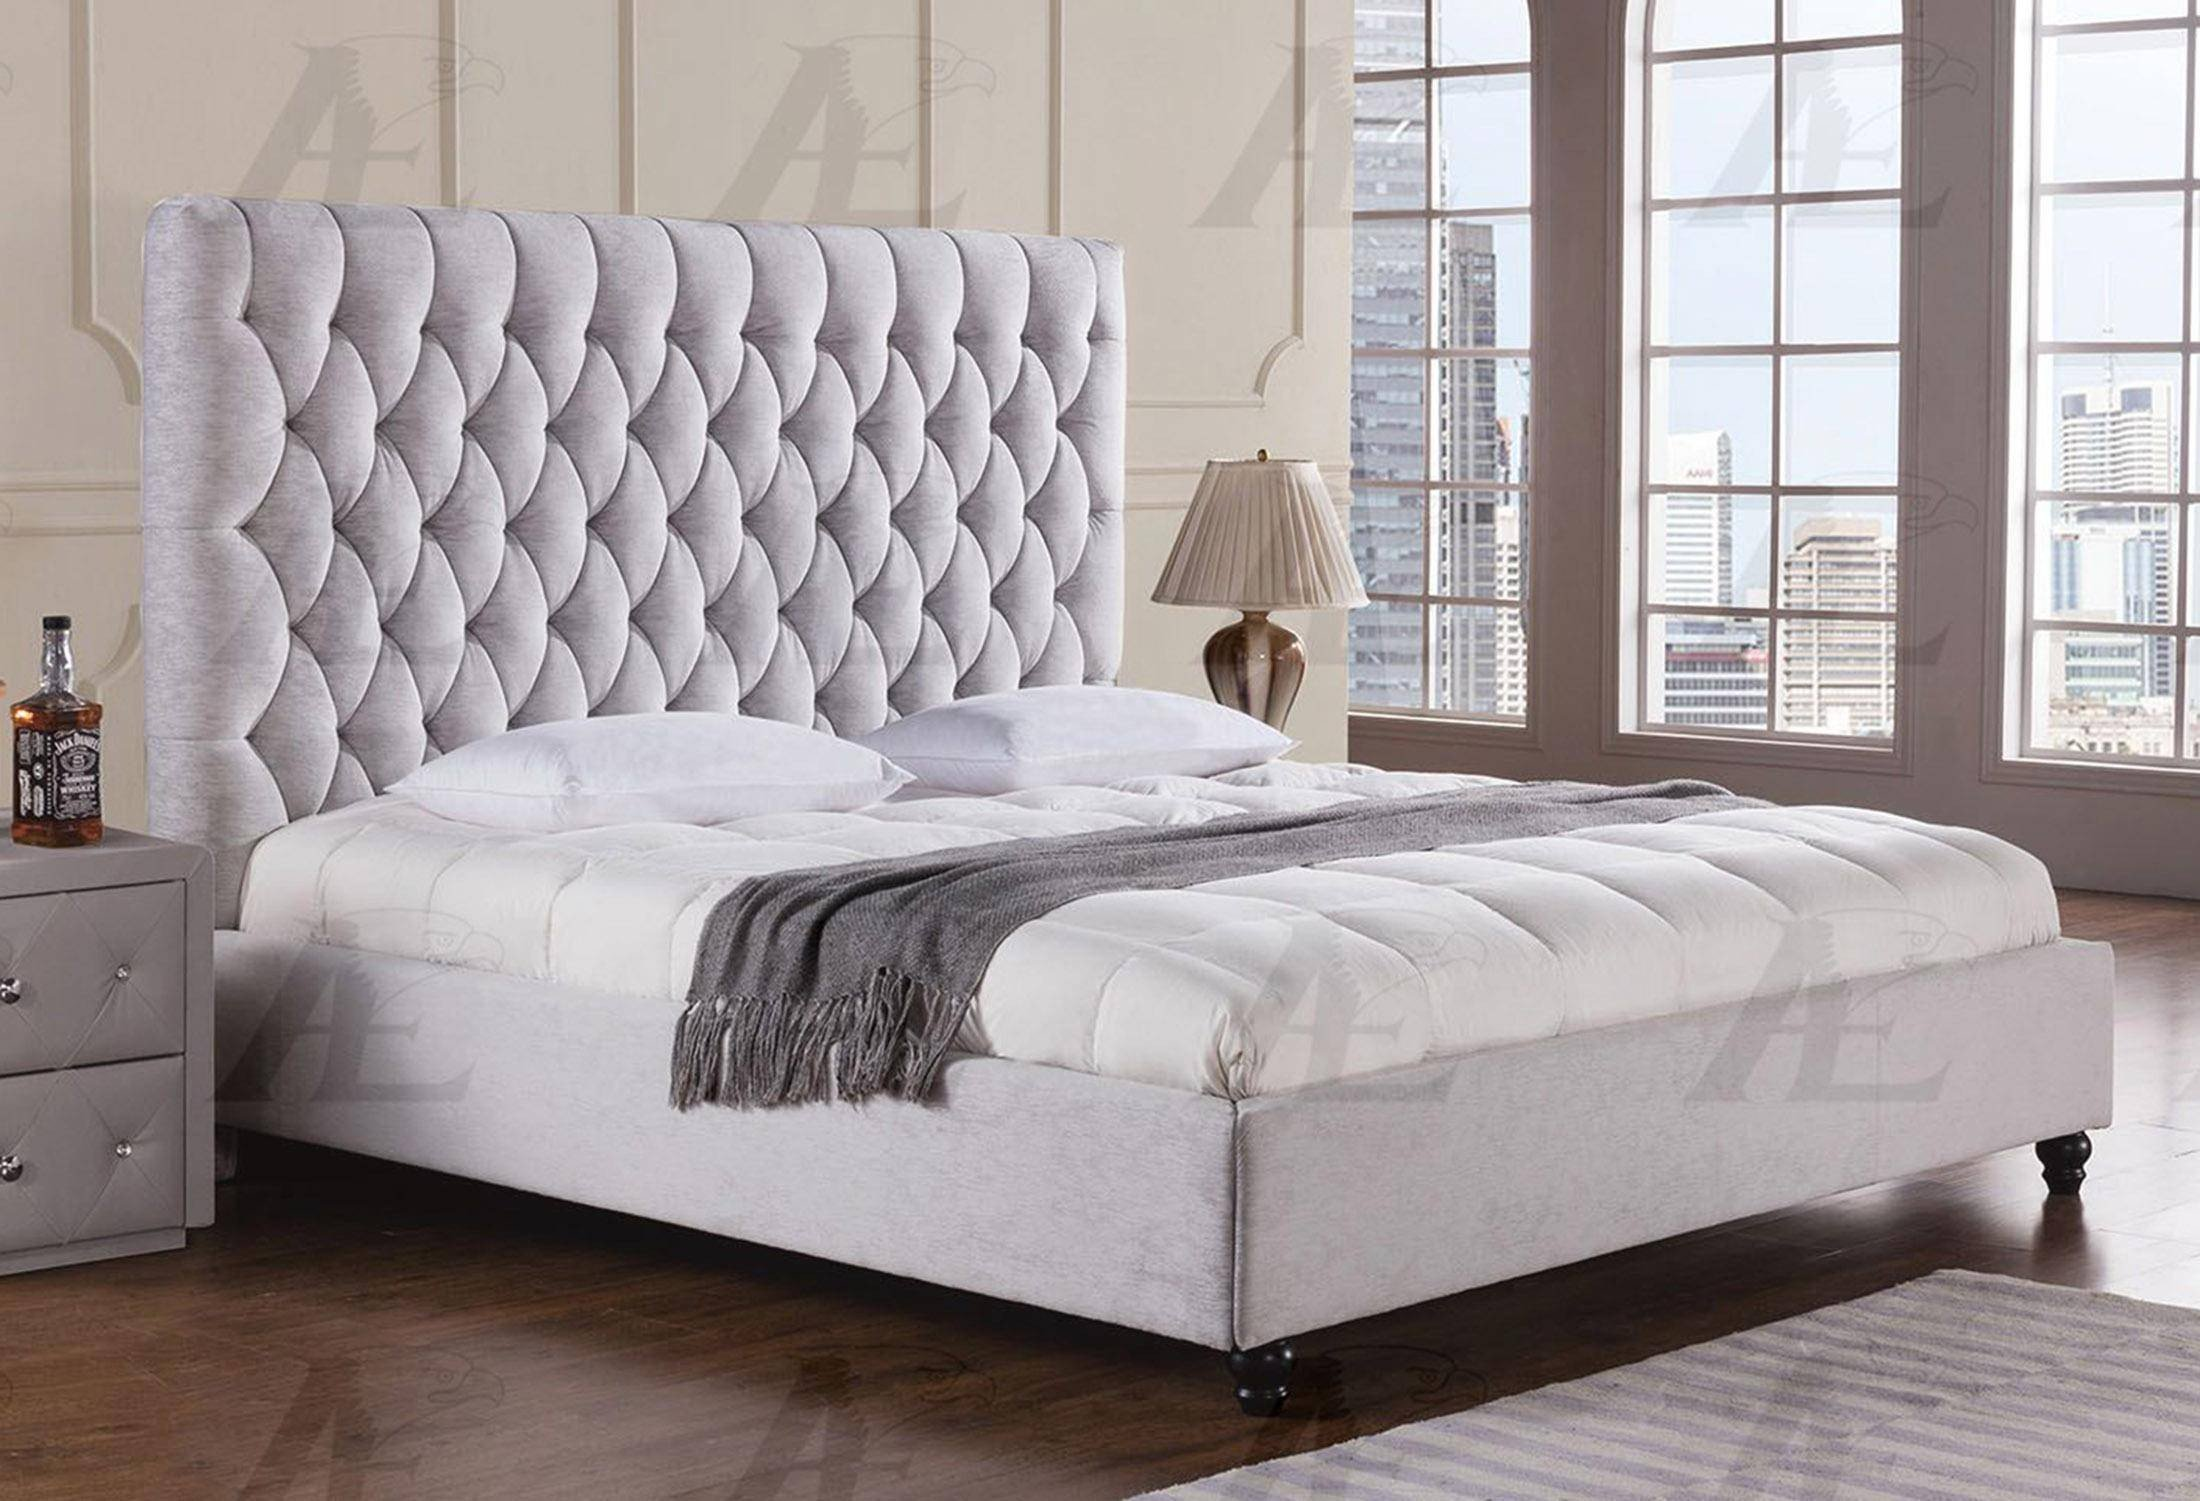 Tufted Headboard Bedroom Set Unique American Eagle Furniture B D060 Light Gray Queen Size Bed